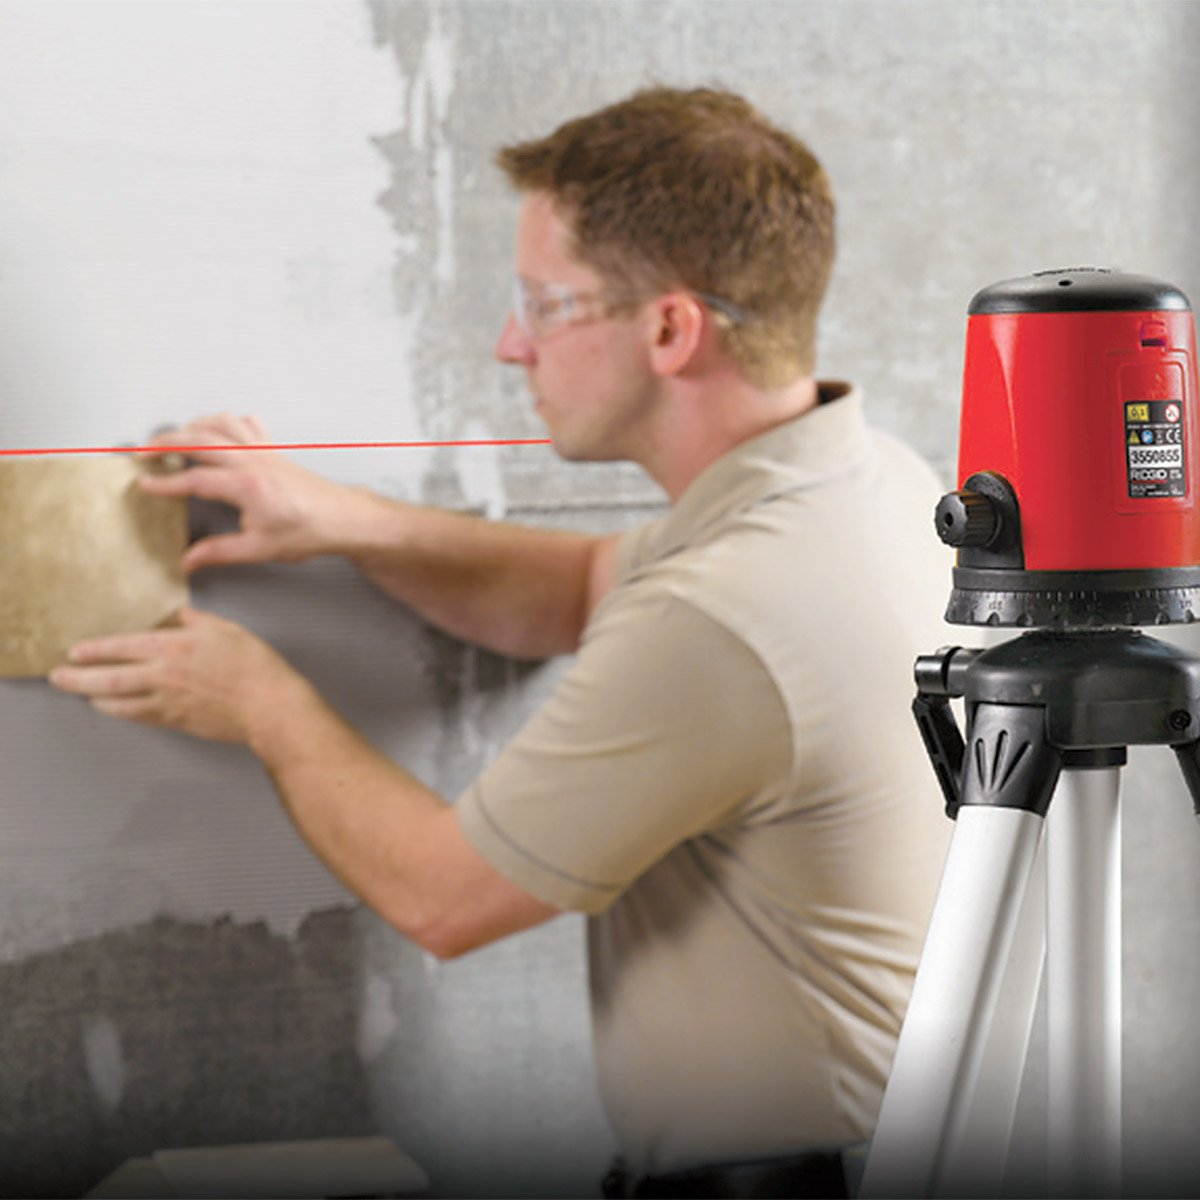 RIDGID 38758 Micro CL-100 Self-Levelling Cross-Line Laser Kit Horizontal and Vertical Laser Level with 30-Meter Interior Range